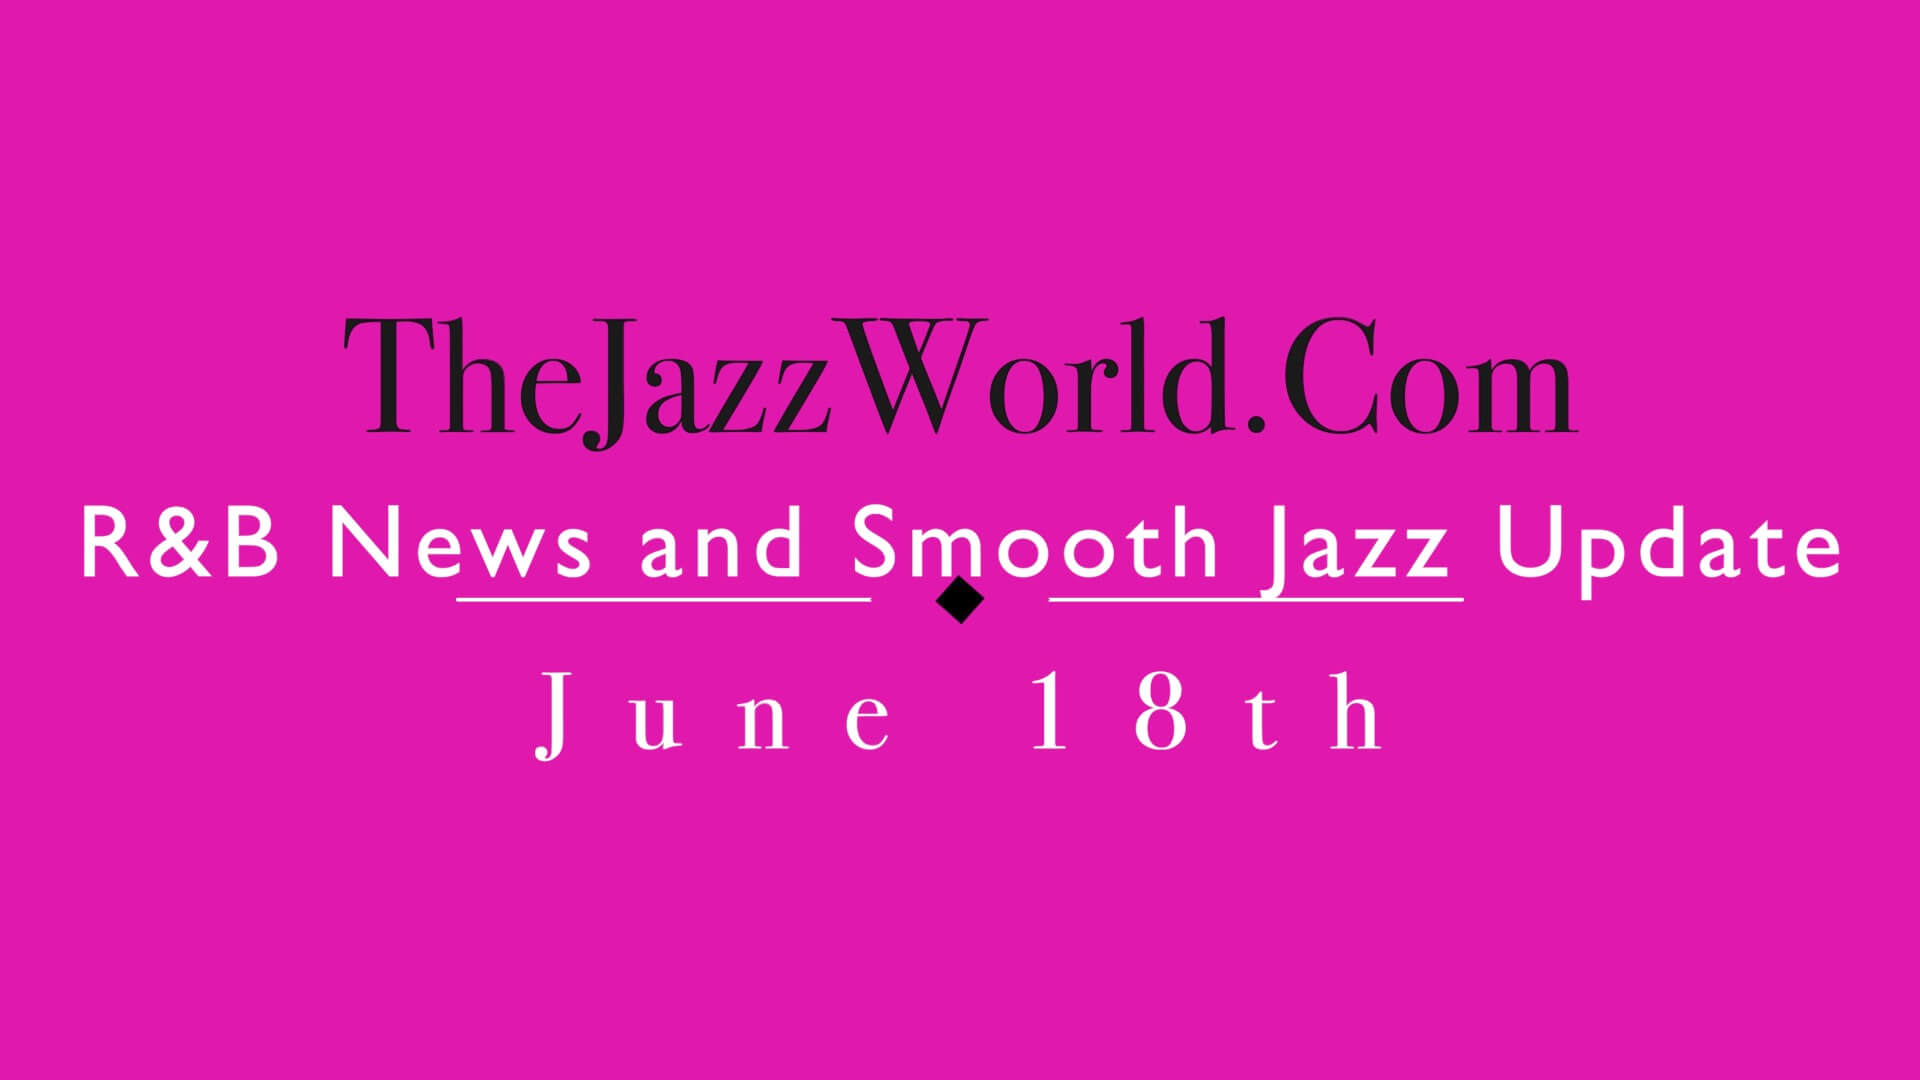 The Jazz World Show 6:18